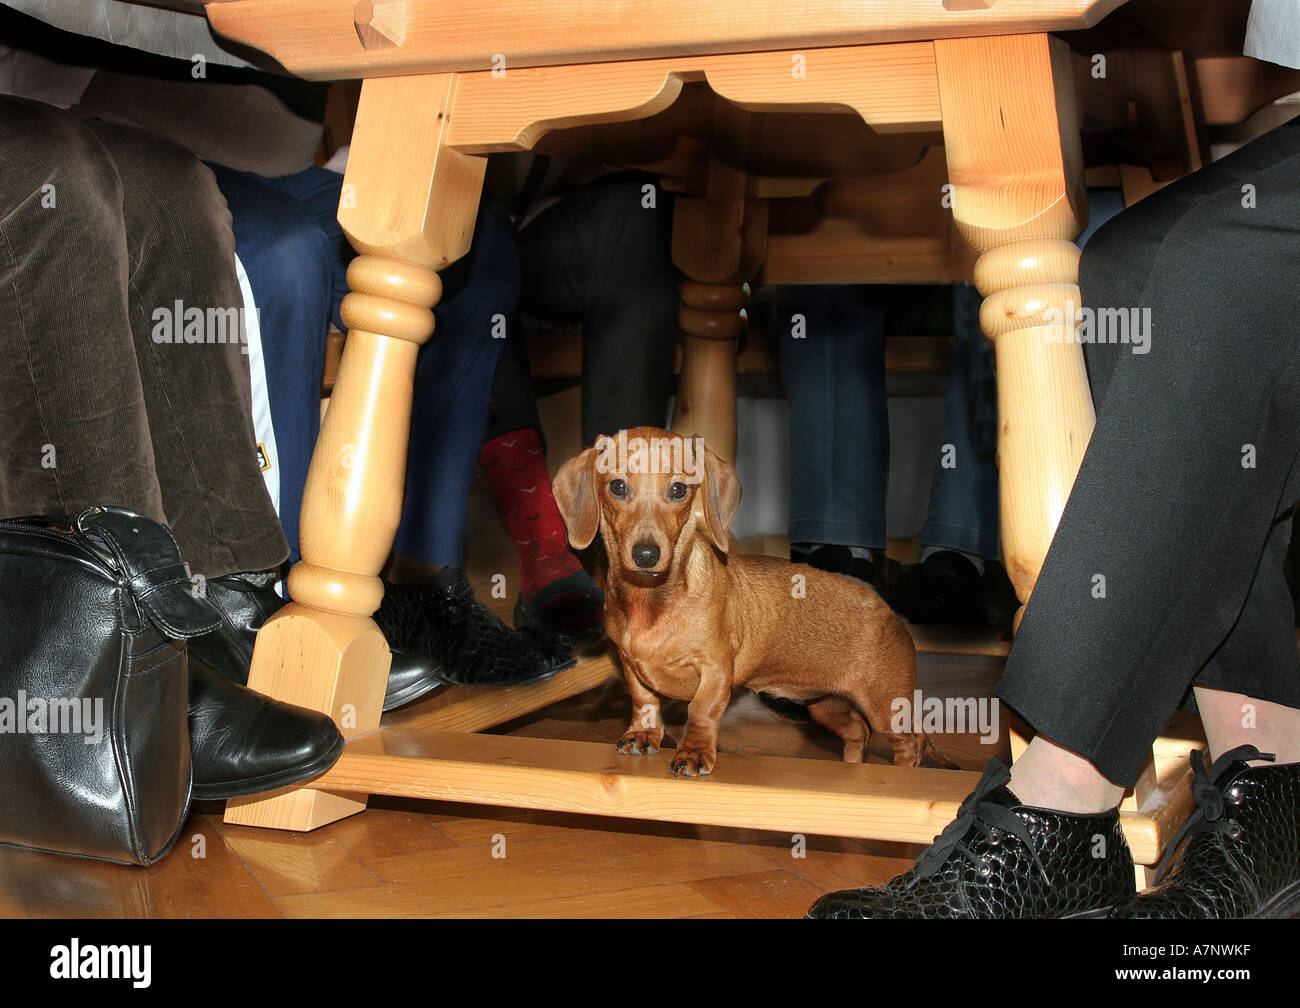 legs under table stockfotos legs under table bilder alamy. Black Bedroom Furniture Sets. Home Design Ideas